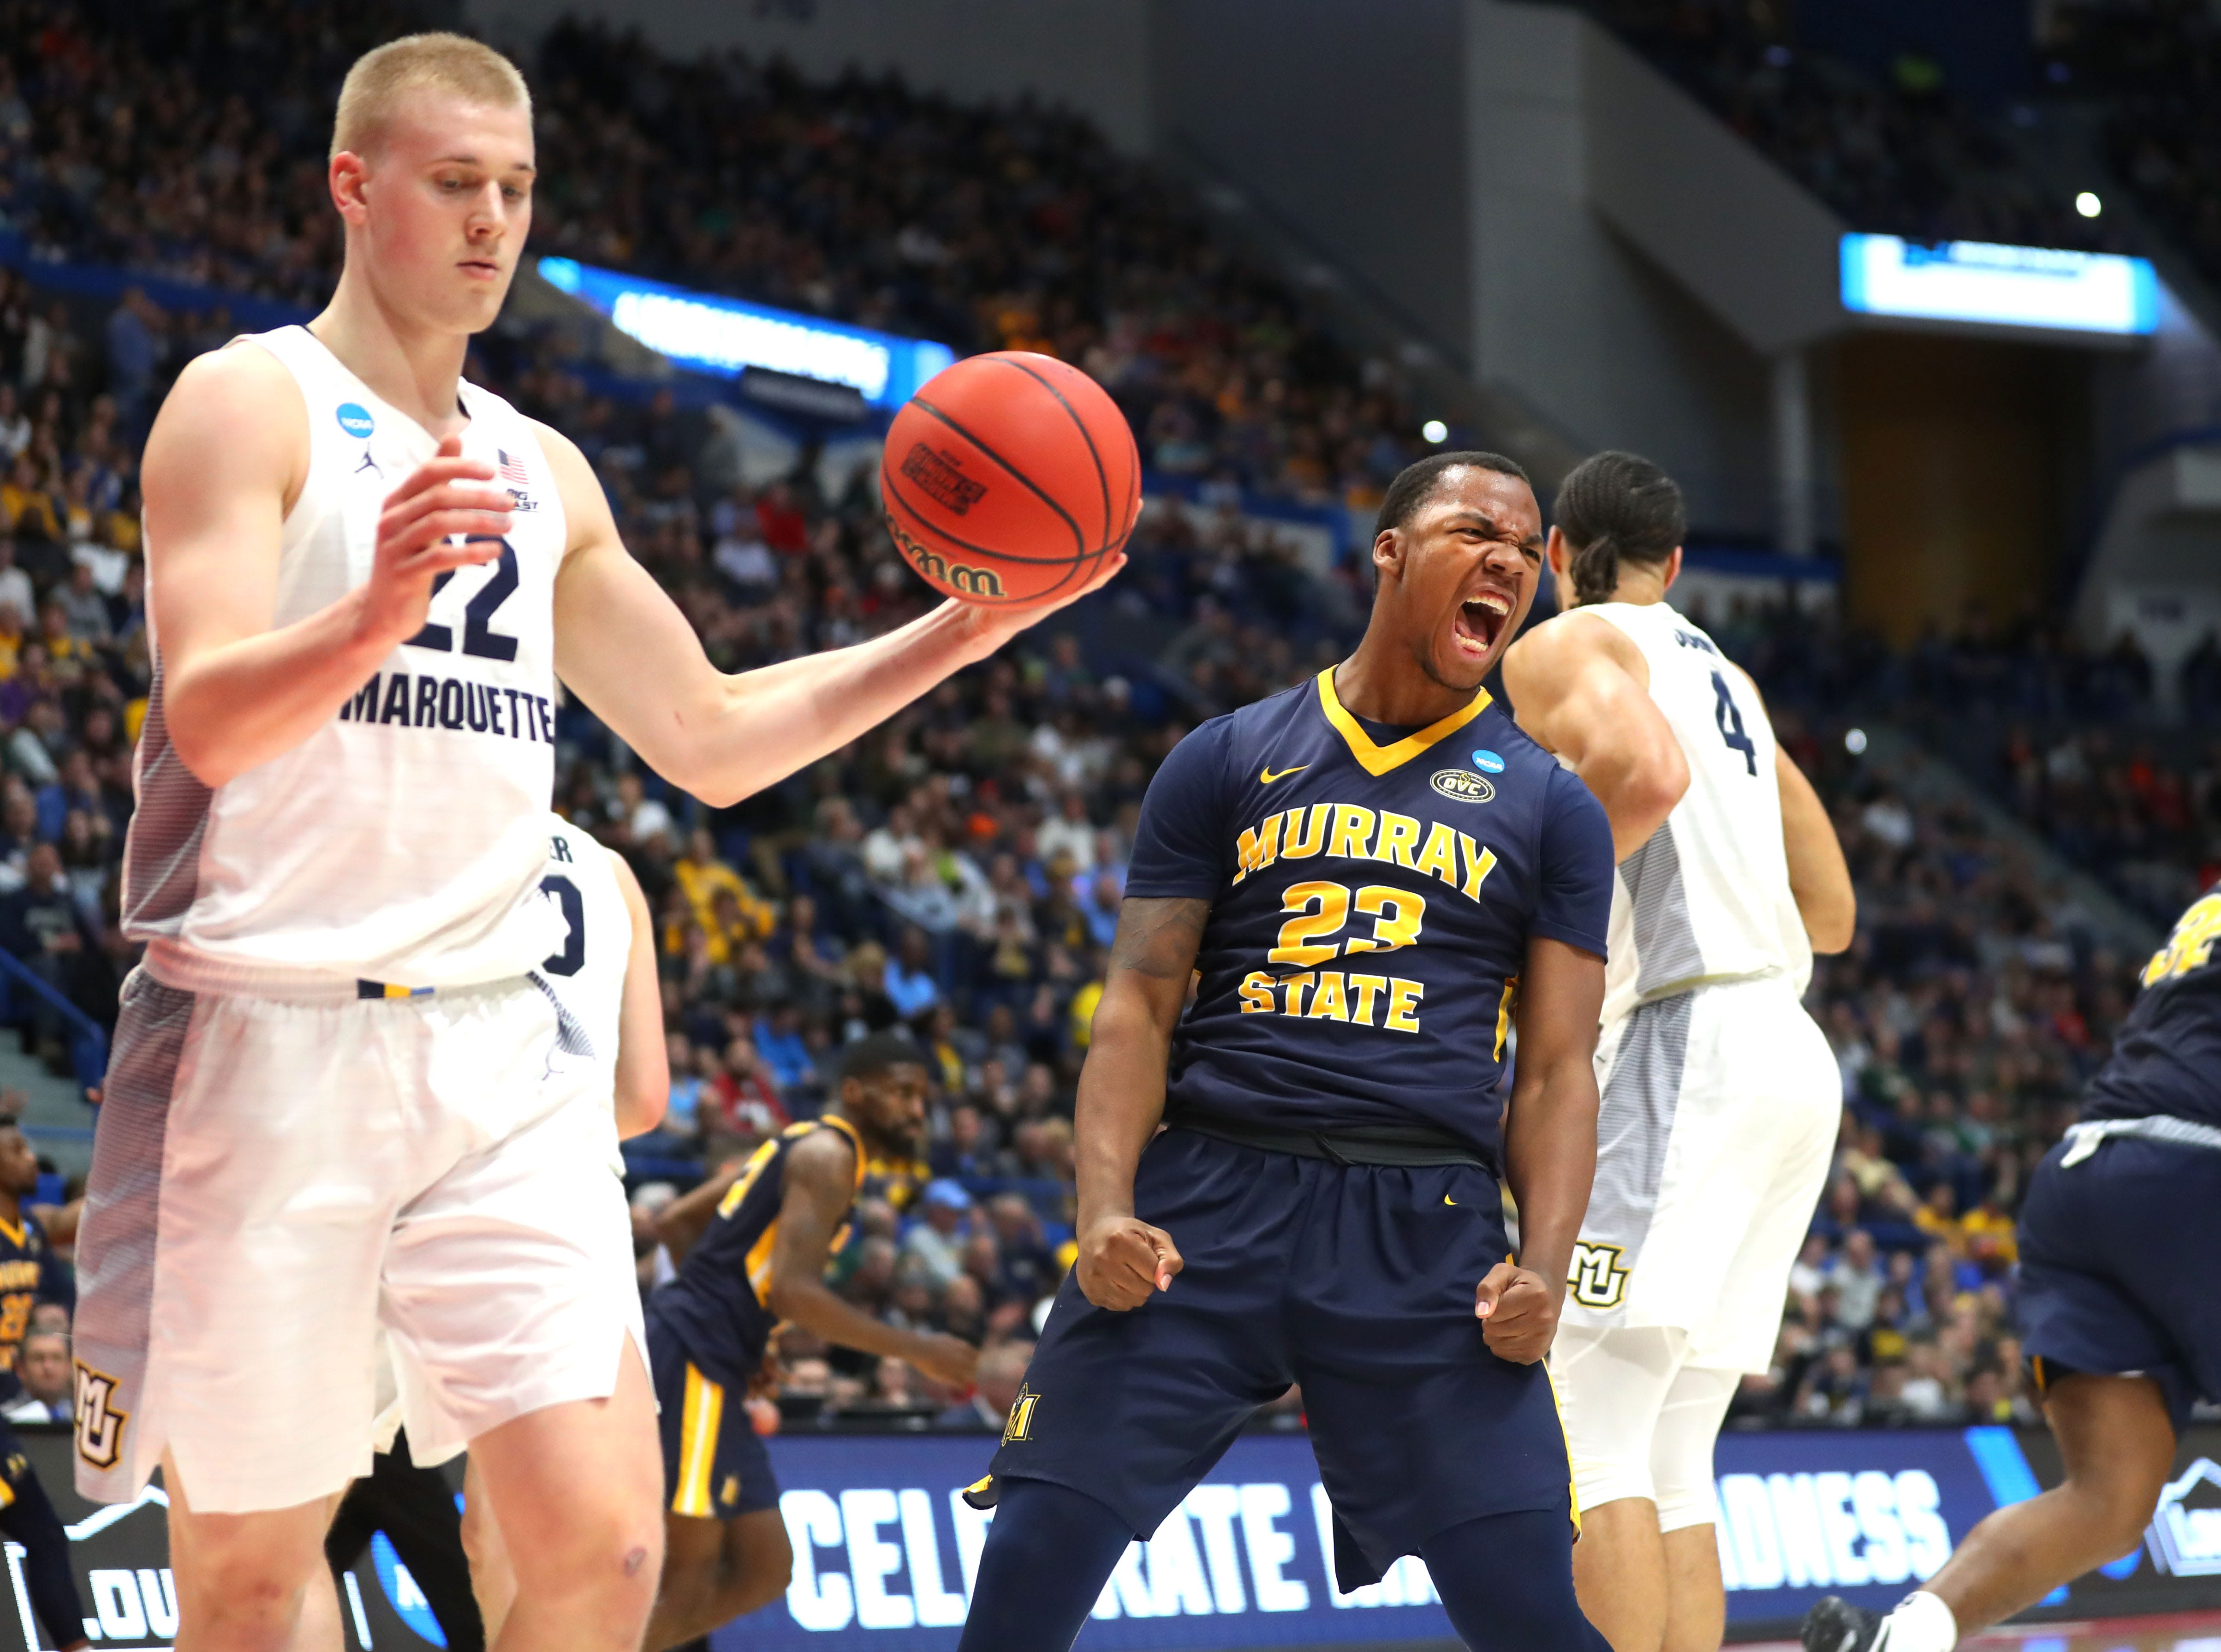 KJ Williams of Murray State is pumped up after slamming home two points against Marquette.